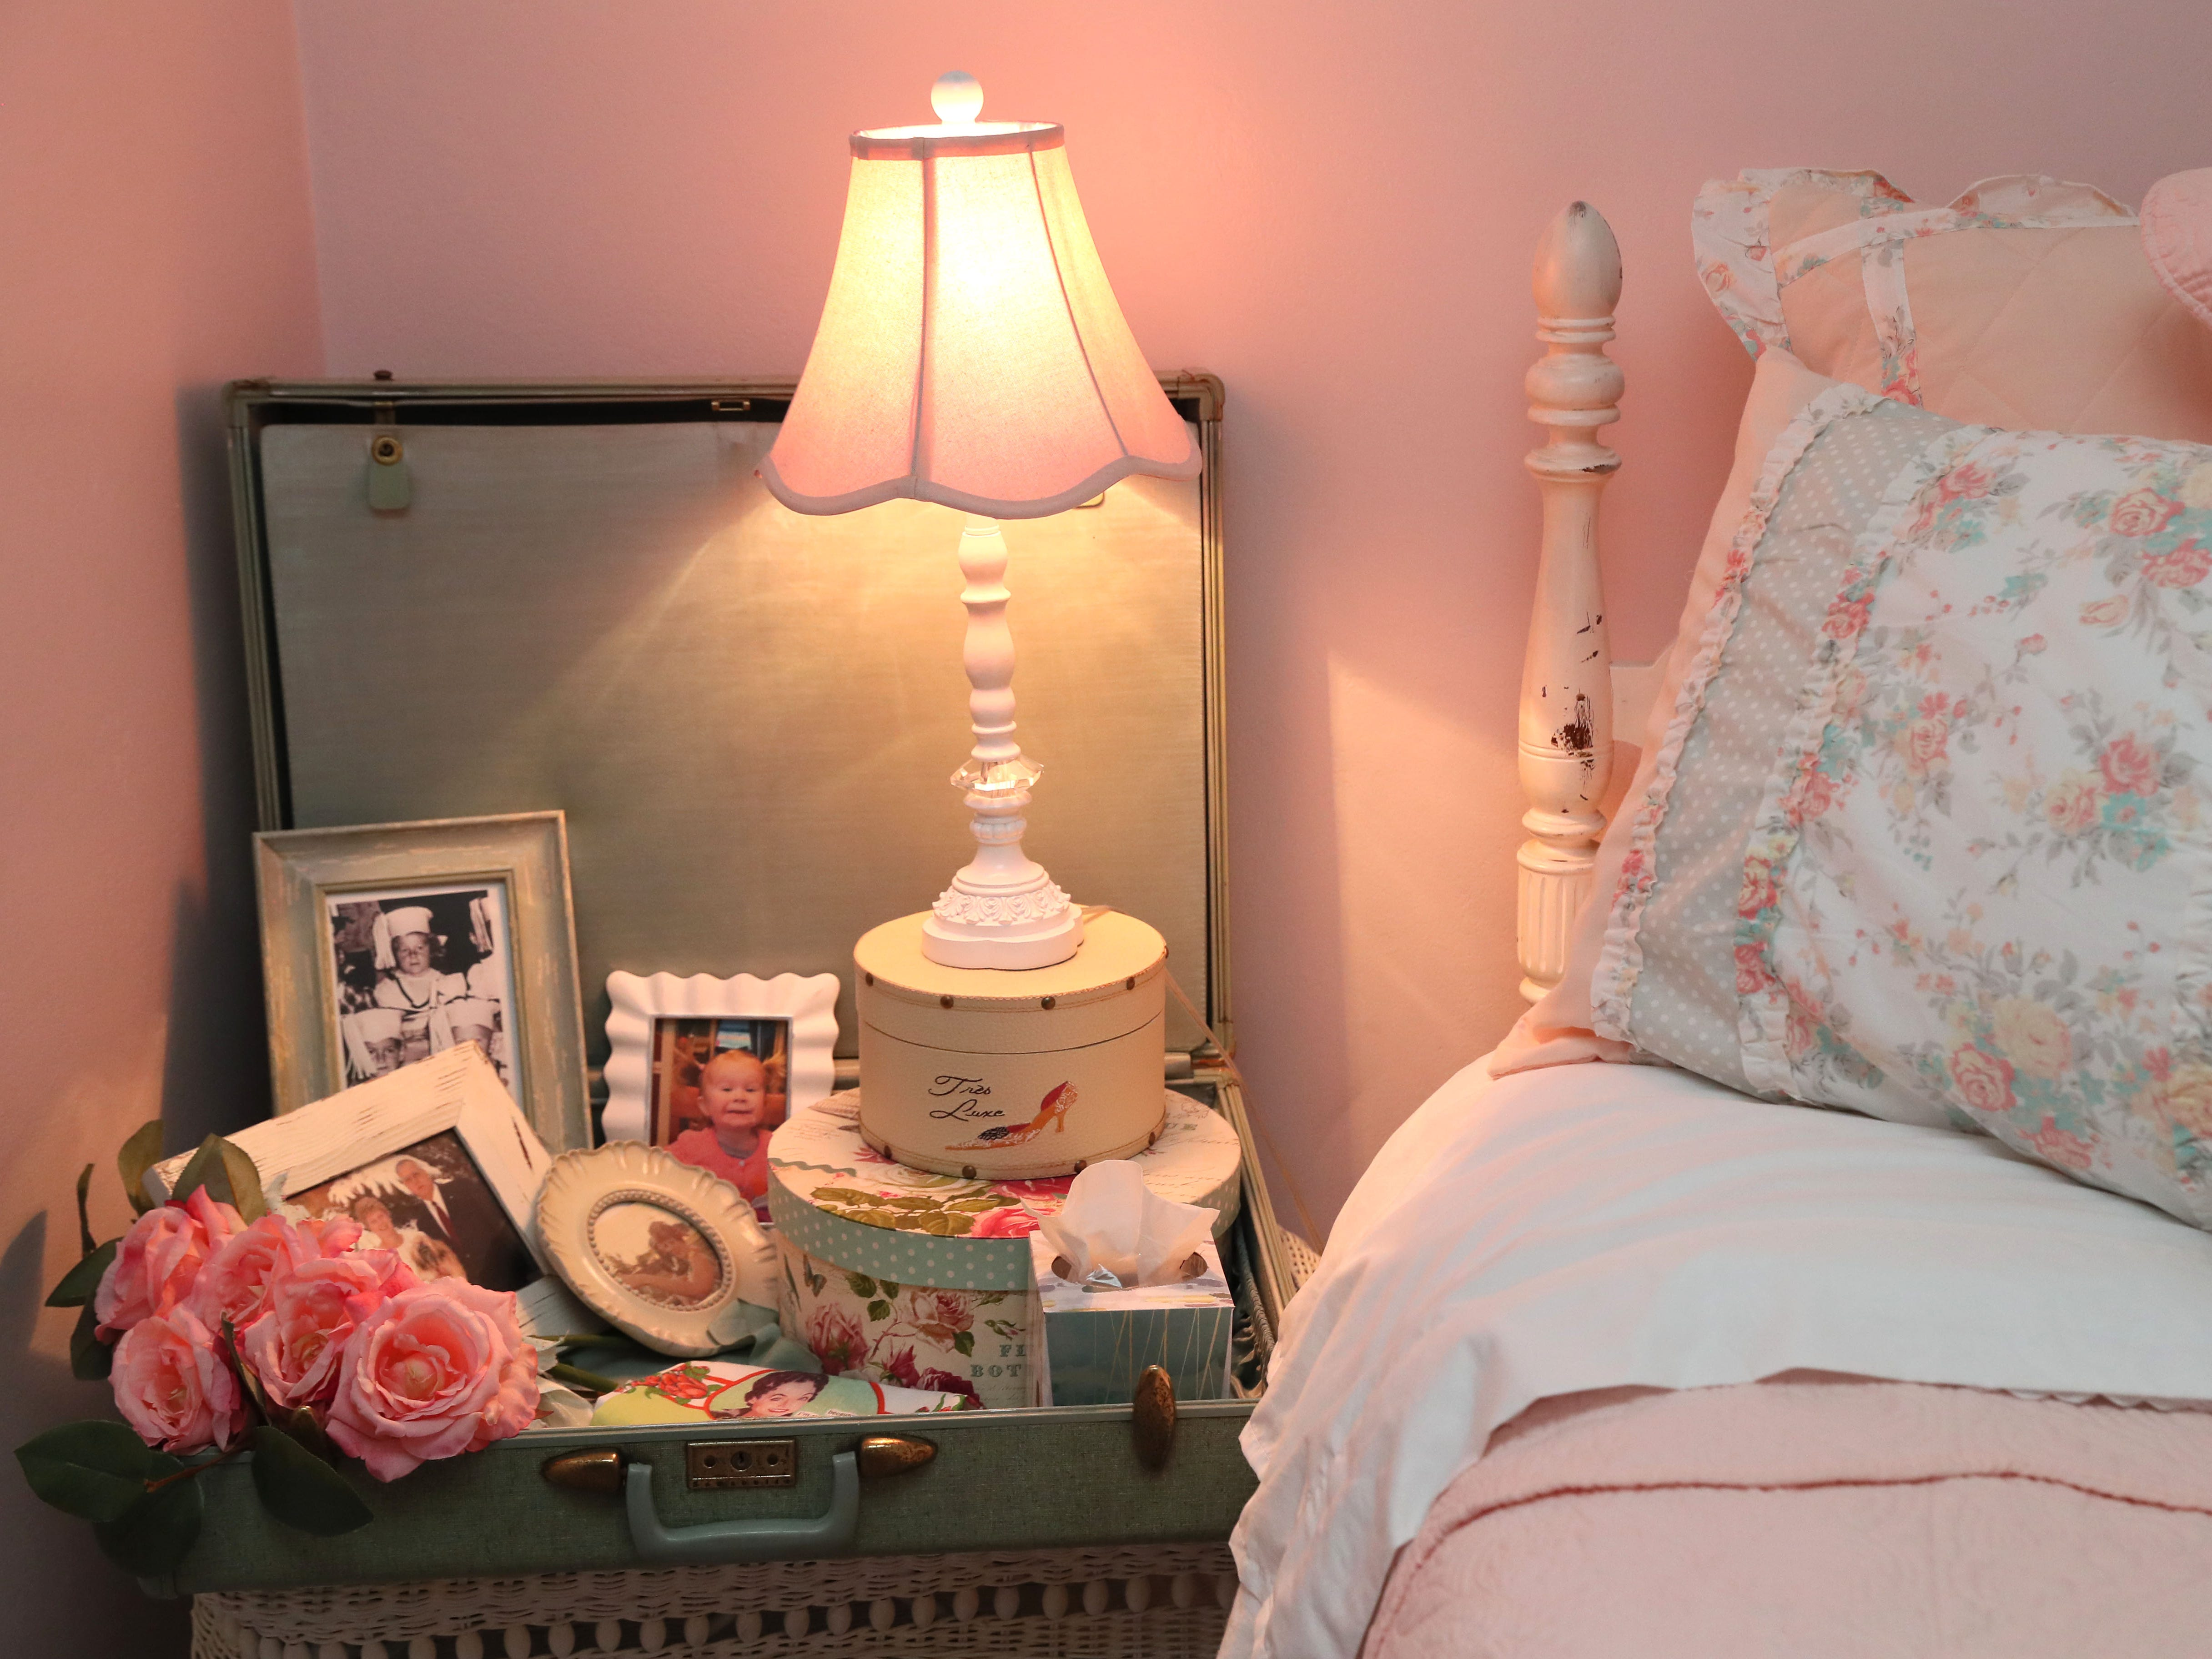 A suitcase in this guest room holds pictures and other decorative objects.